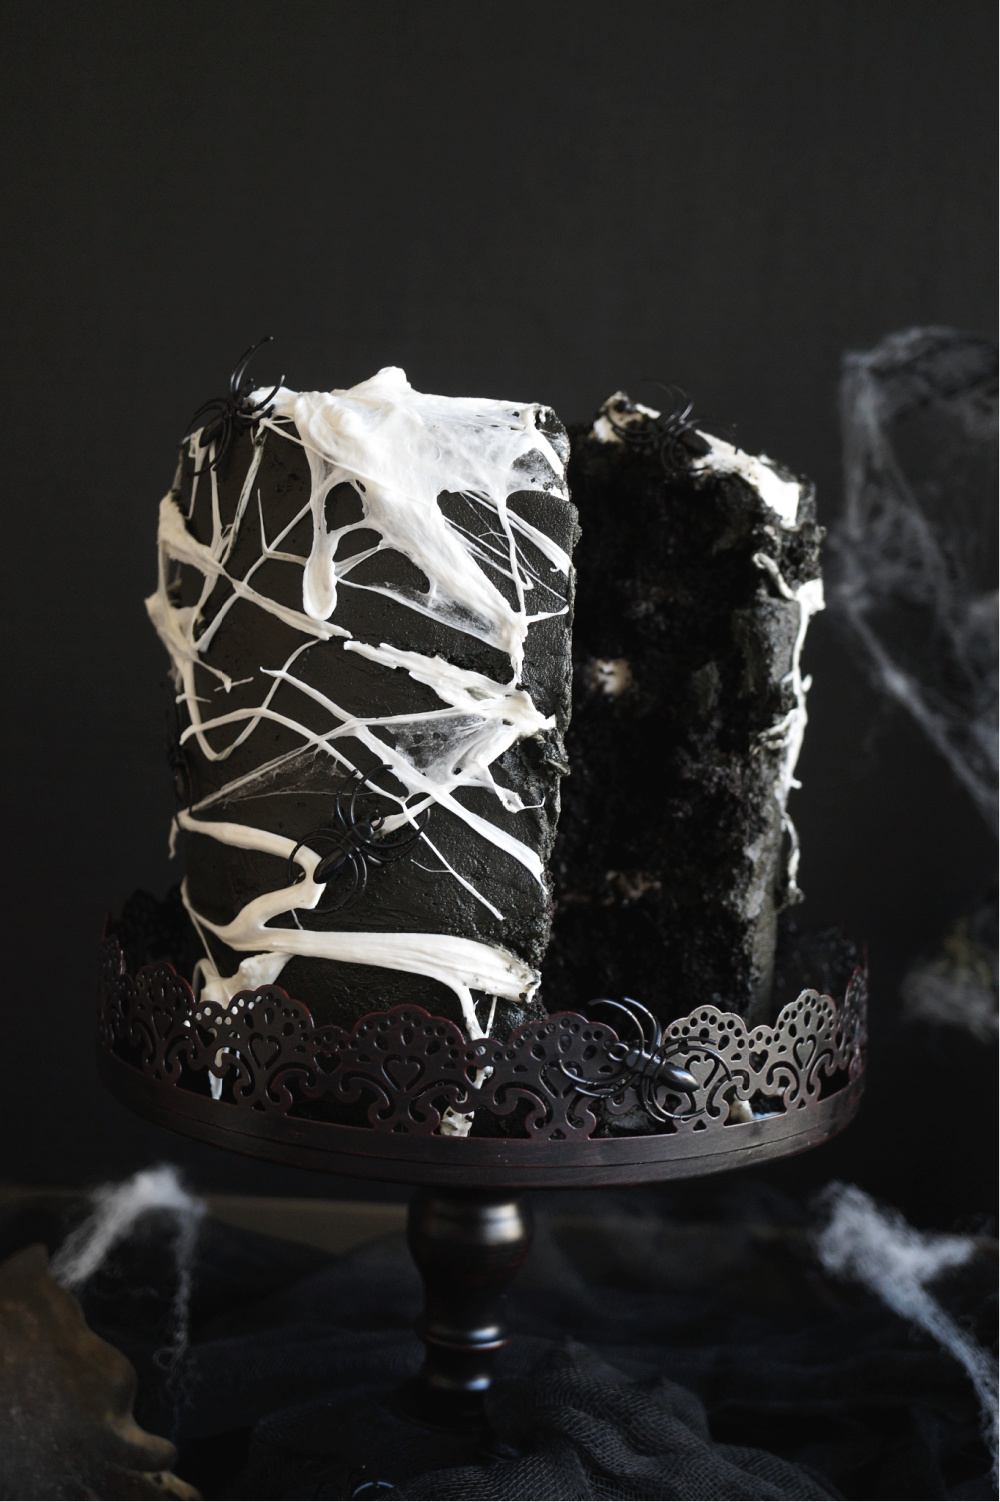 spiderweb cake with slice cut